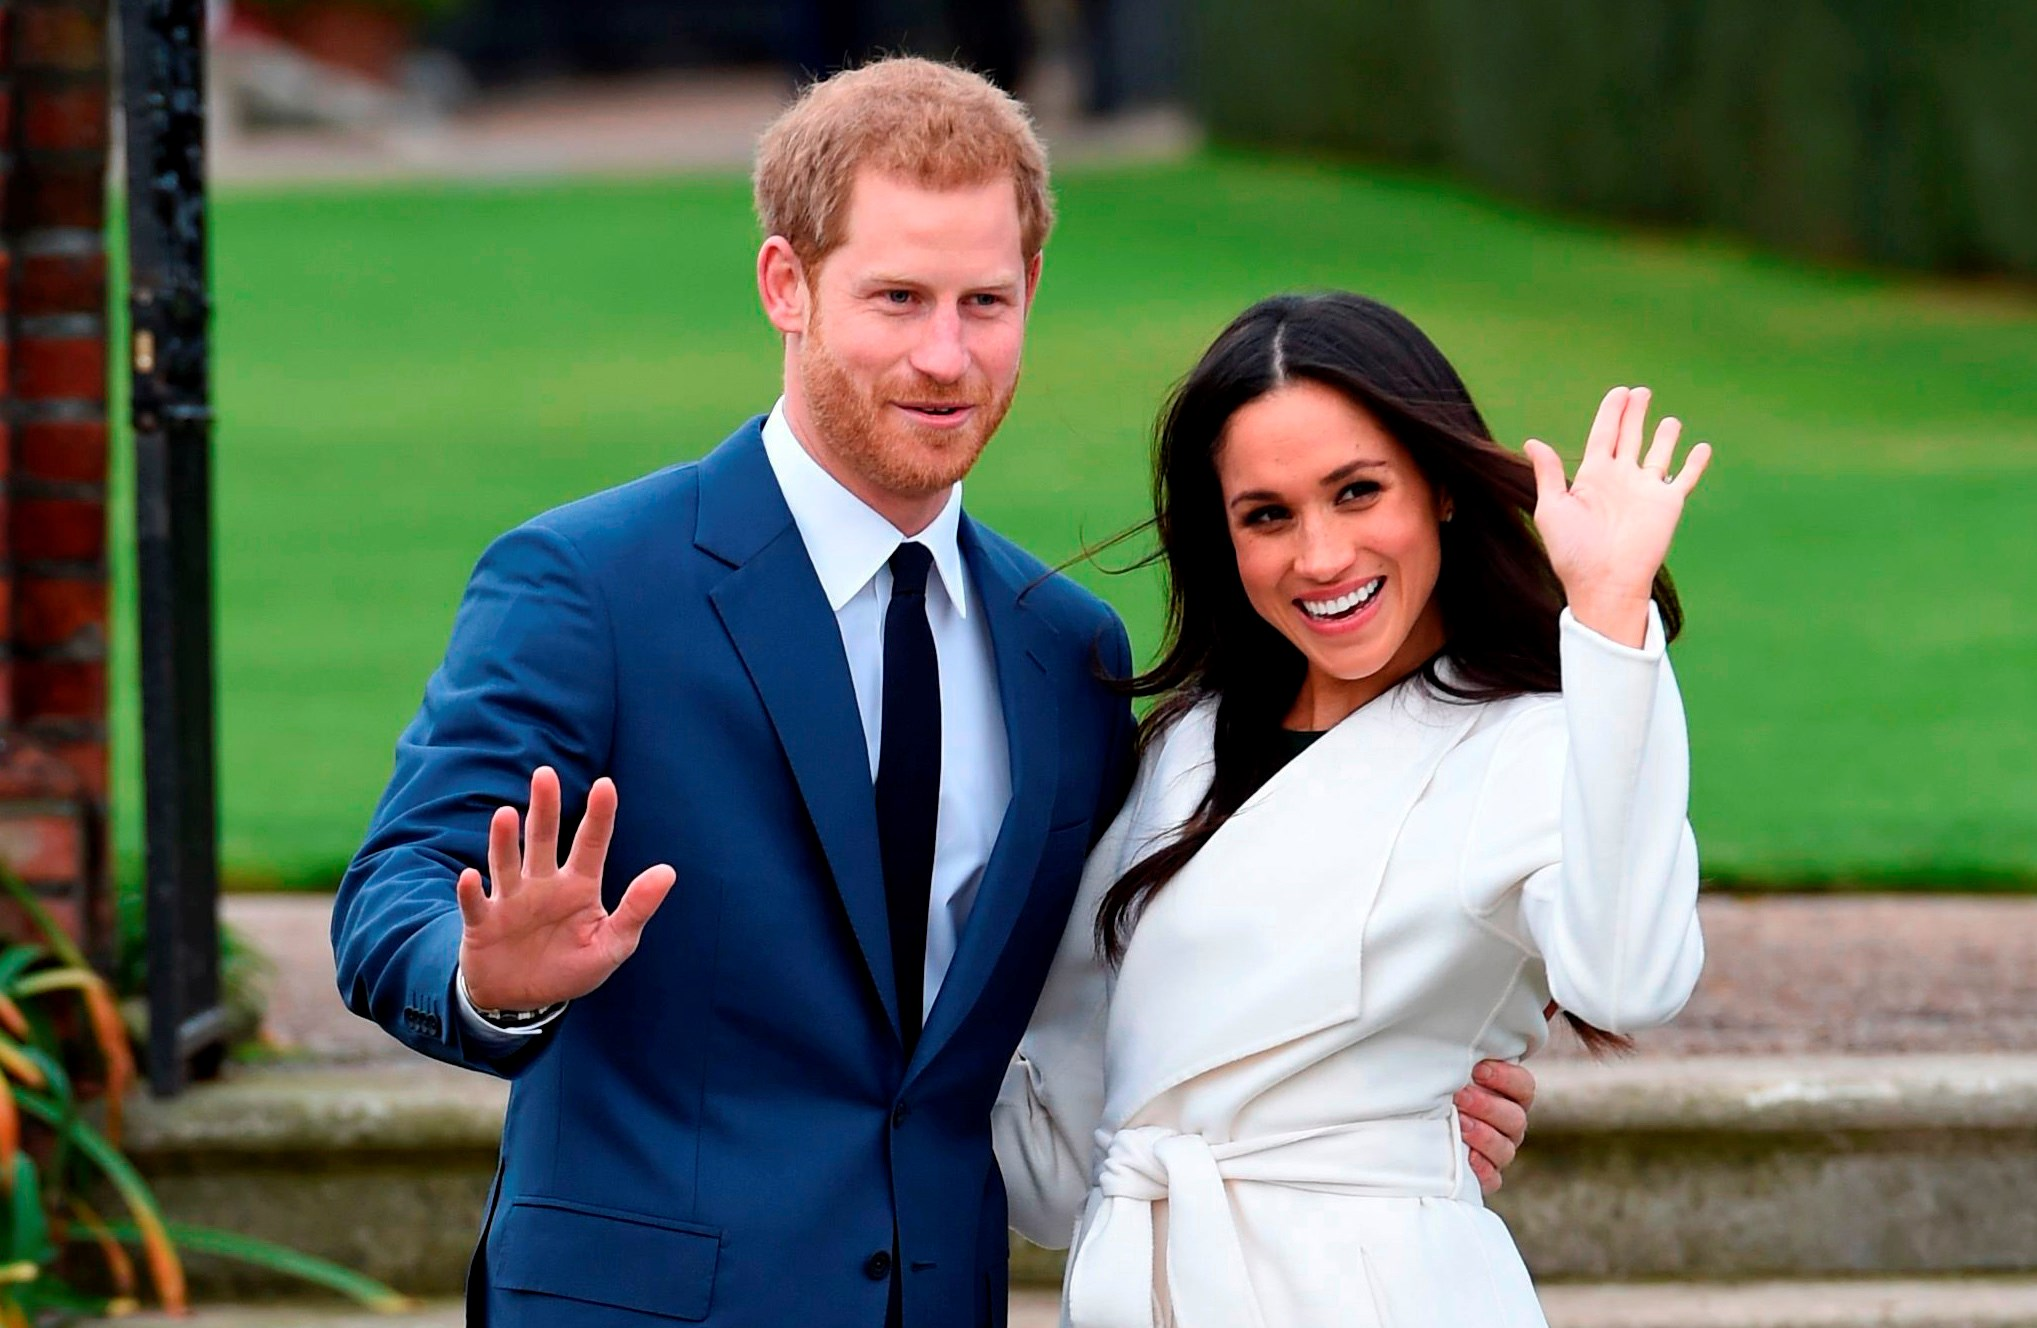 QUIZ: How much do you know about royal weddings